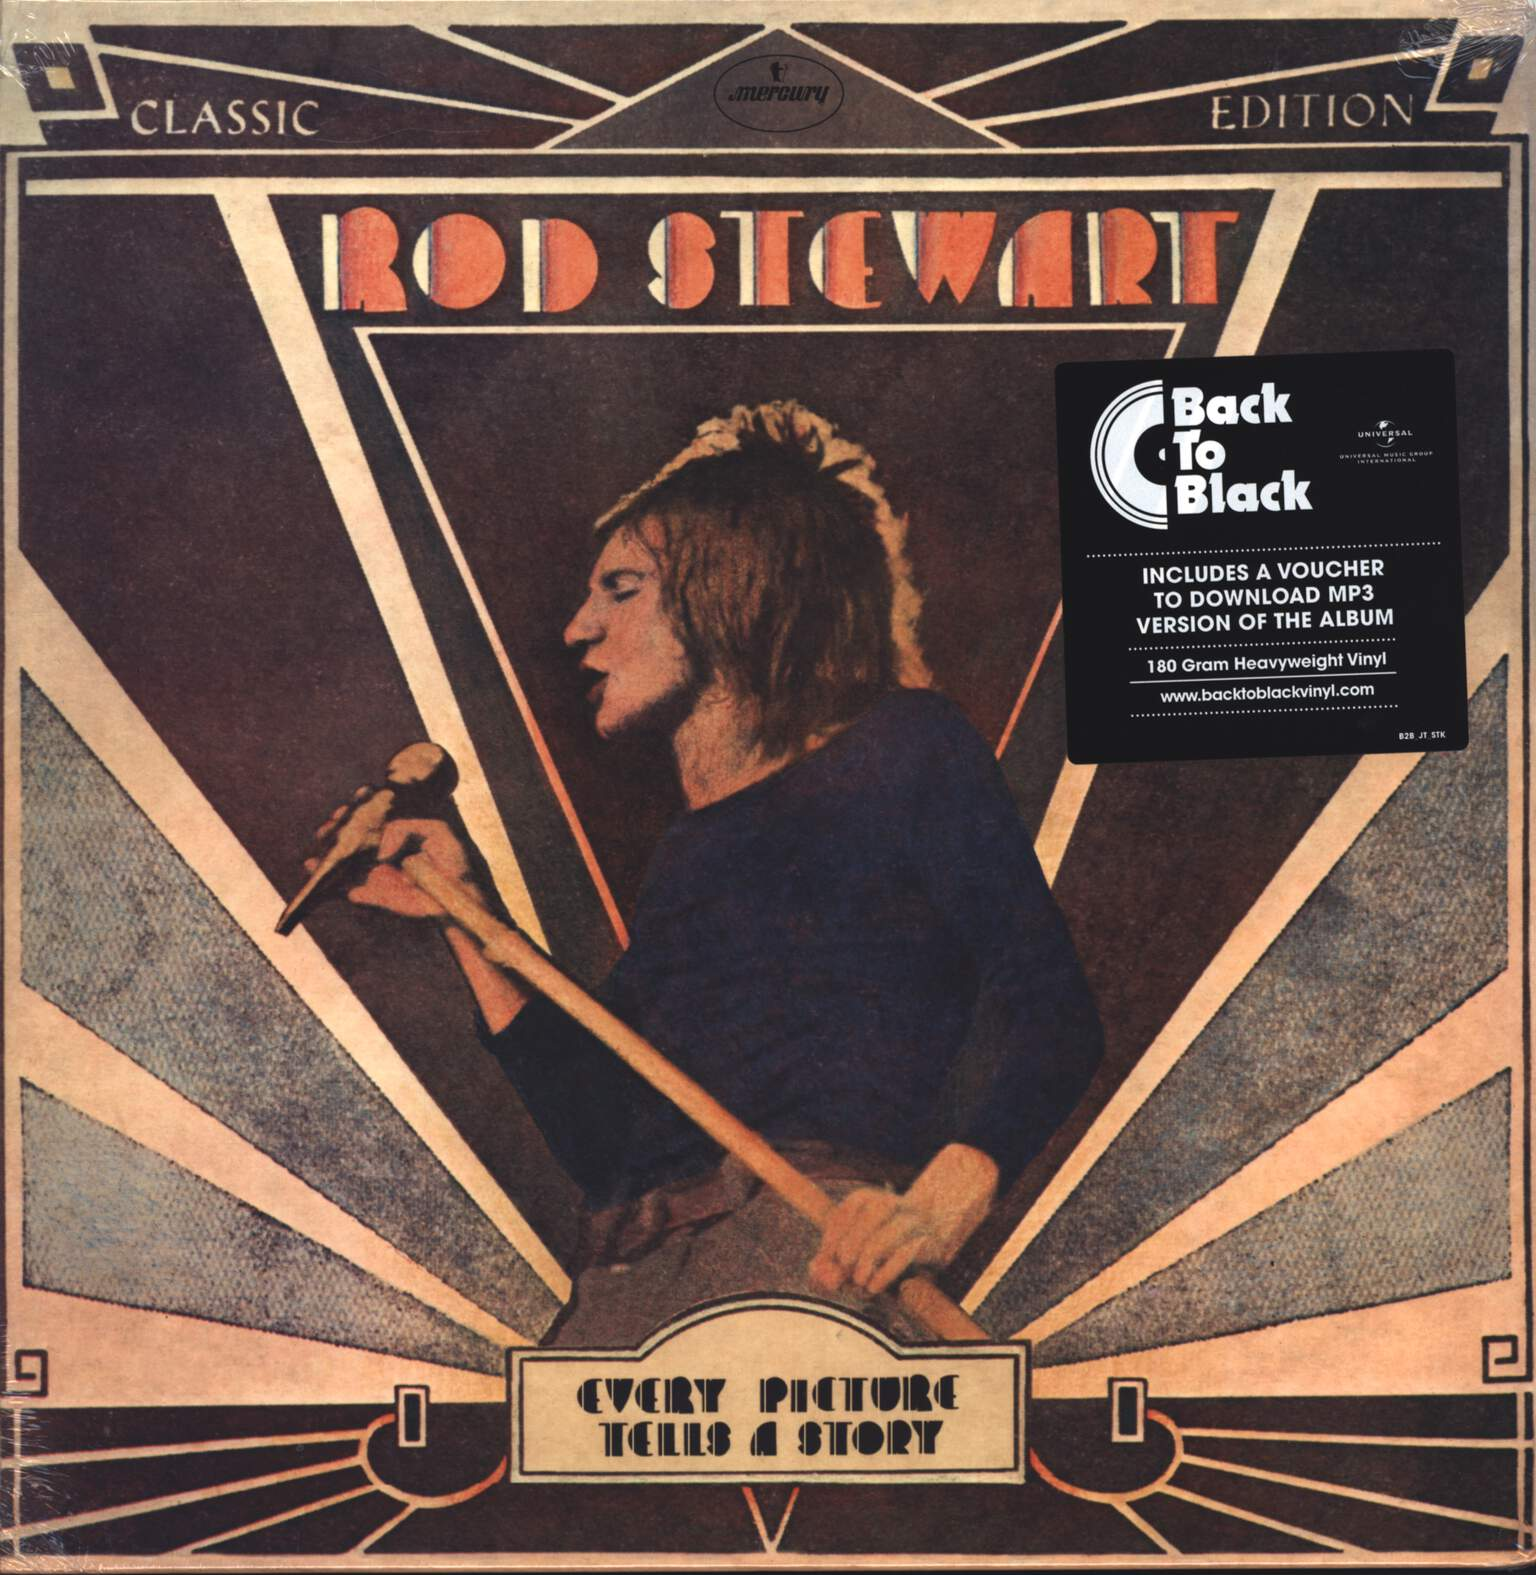 Rod Stewart: Every Picture Tells A Story, LP (Vinyl)